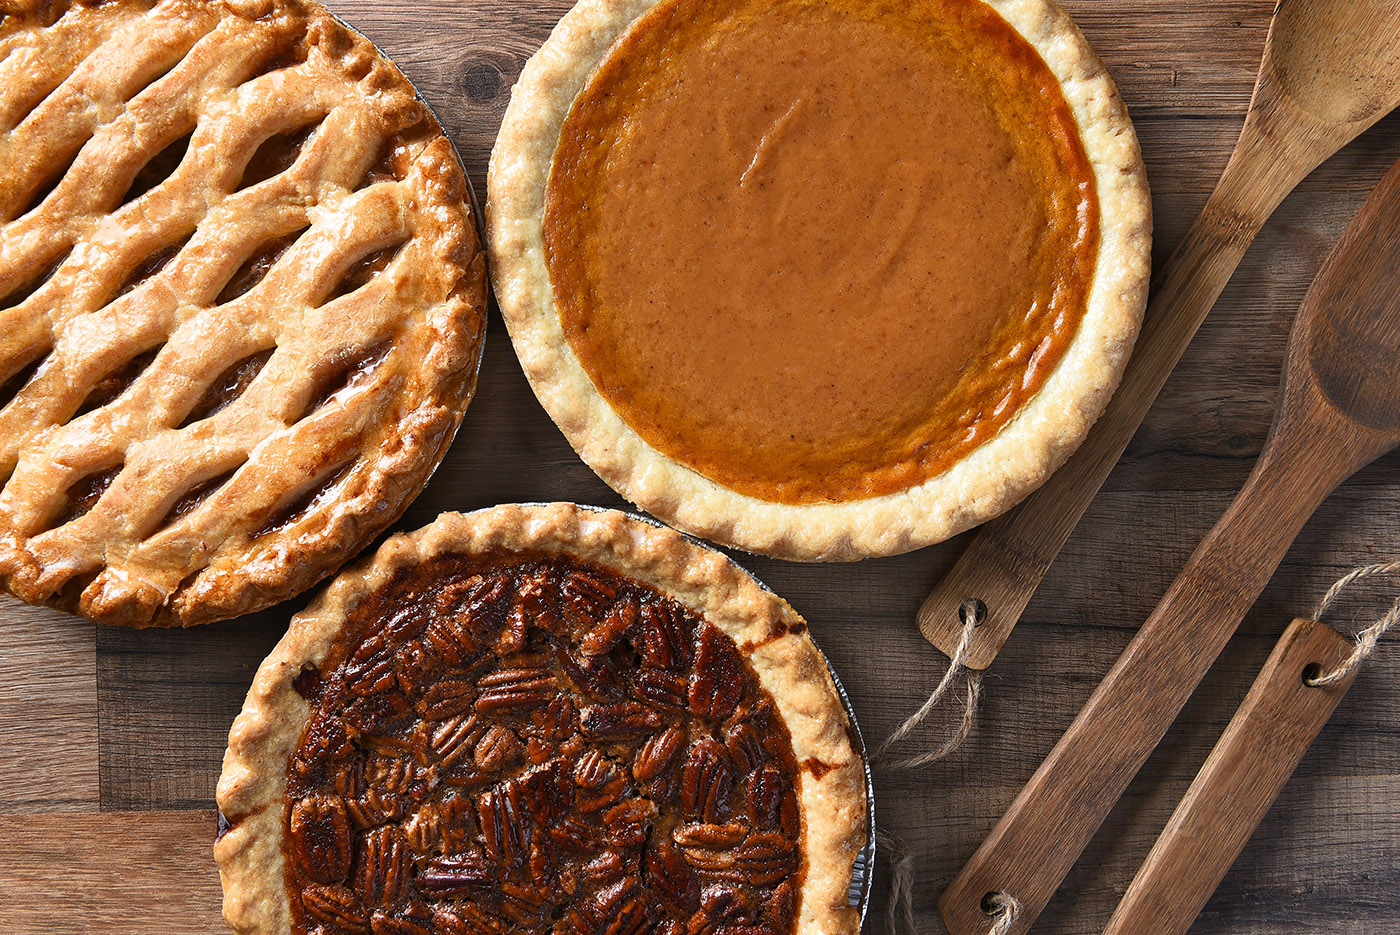 overhead view of three pies, pecan pie, apple pie and pumpkin pie, which is gross